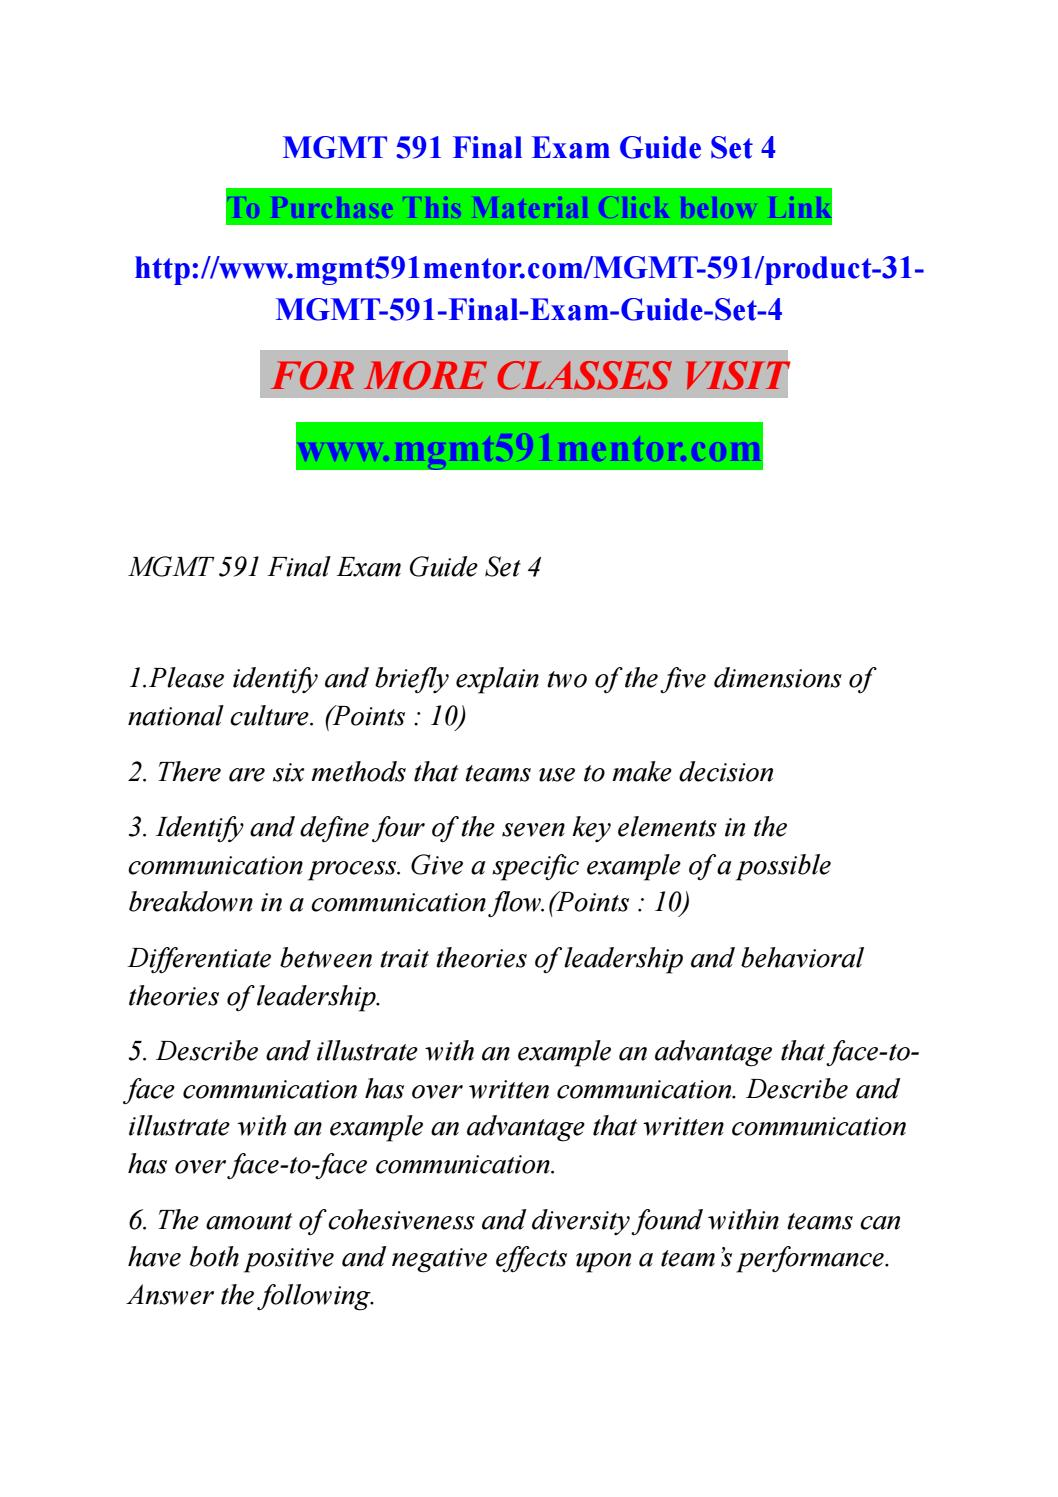 Mgmt 591 final exam guide set 4 by sunny2b - issuu